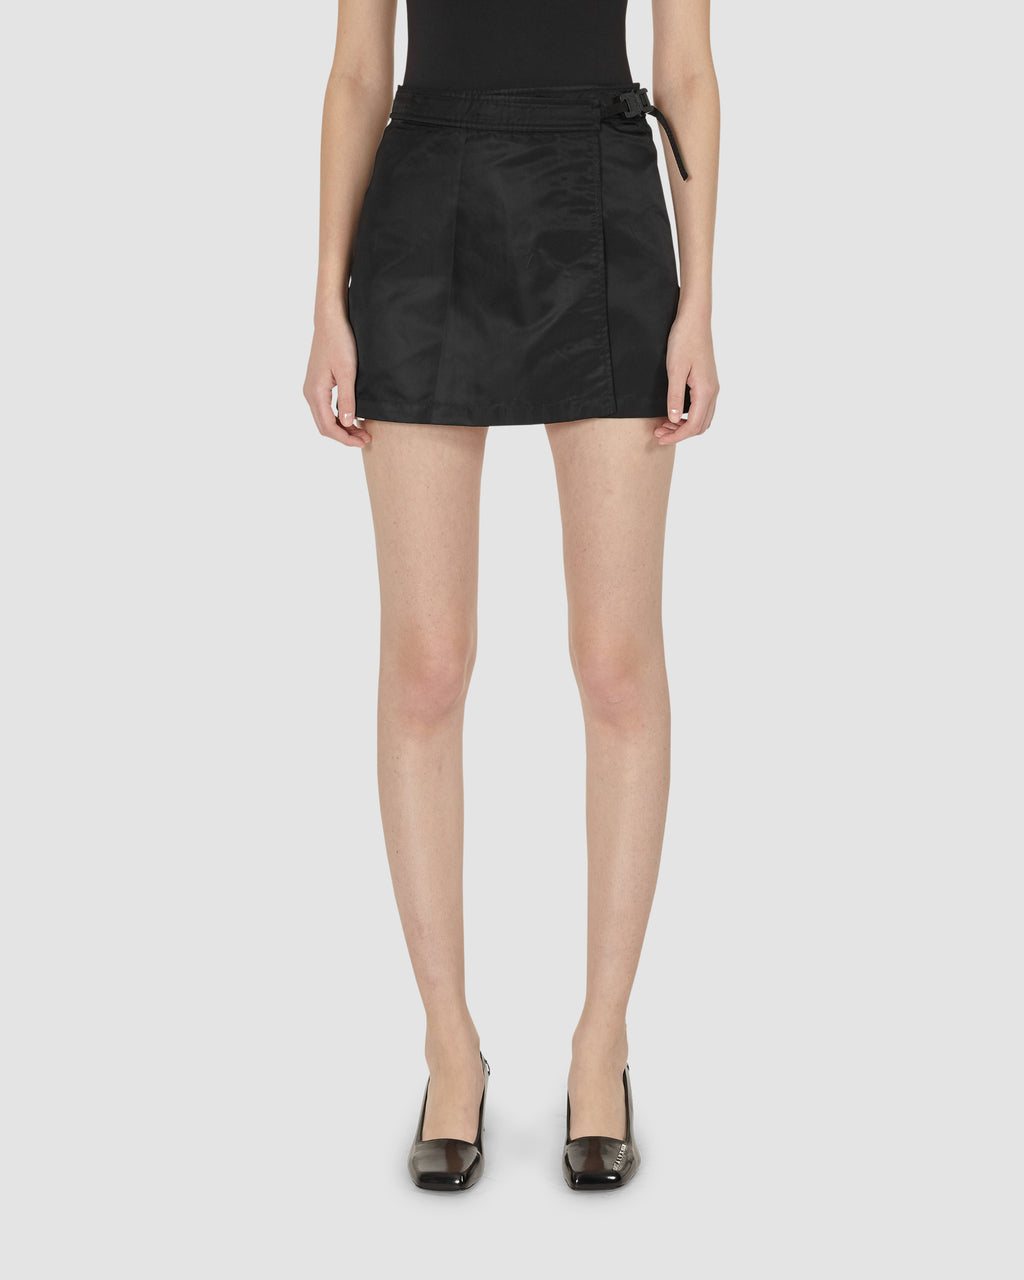 1017 ALYX 9SM | BLACK MINI SKIRT | Skirt | BLACK, Google Shopping, S20, S20EXSH, Skirts, Woman, WOMEN